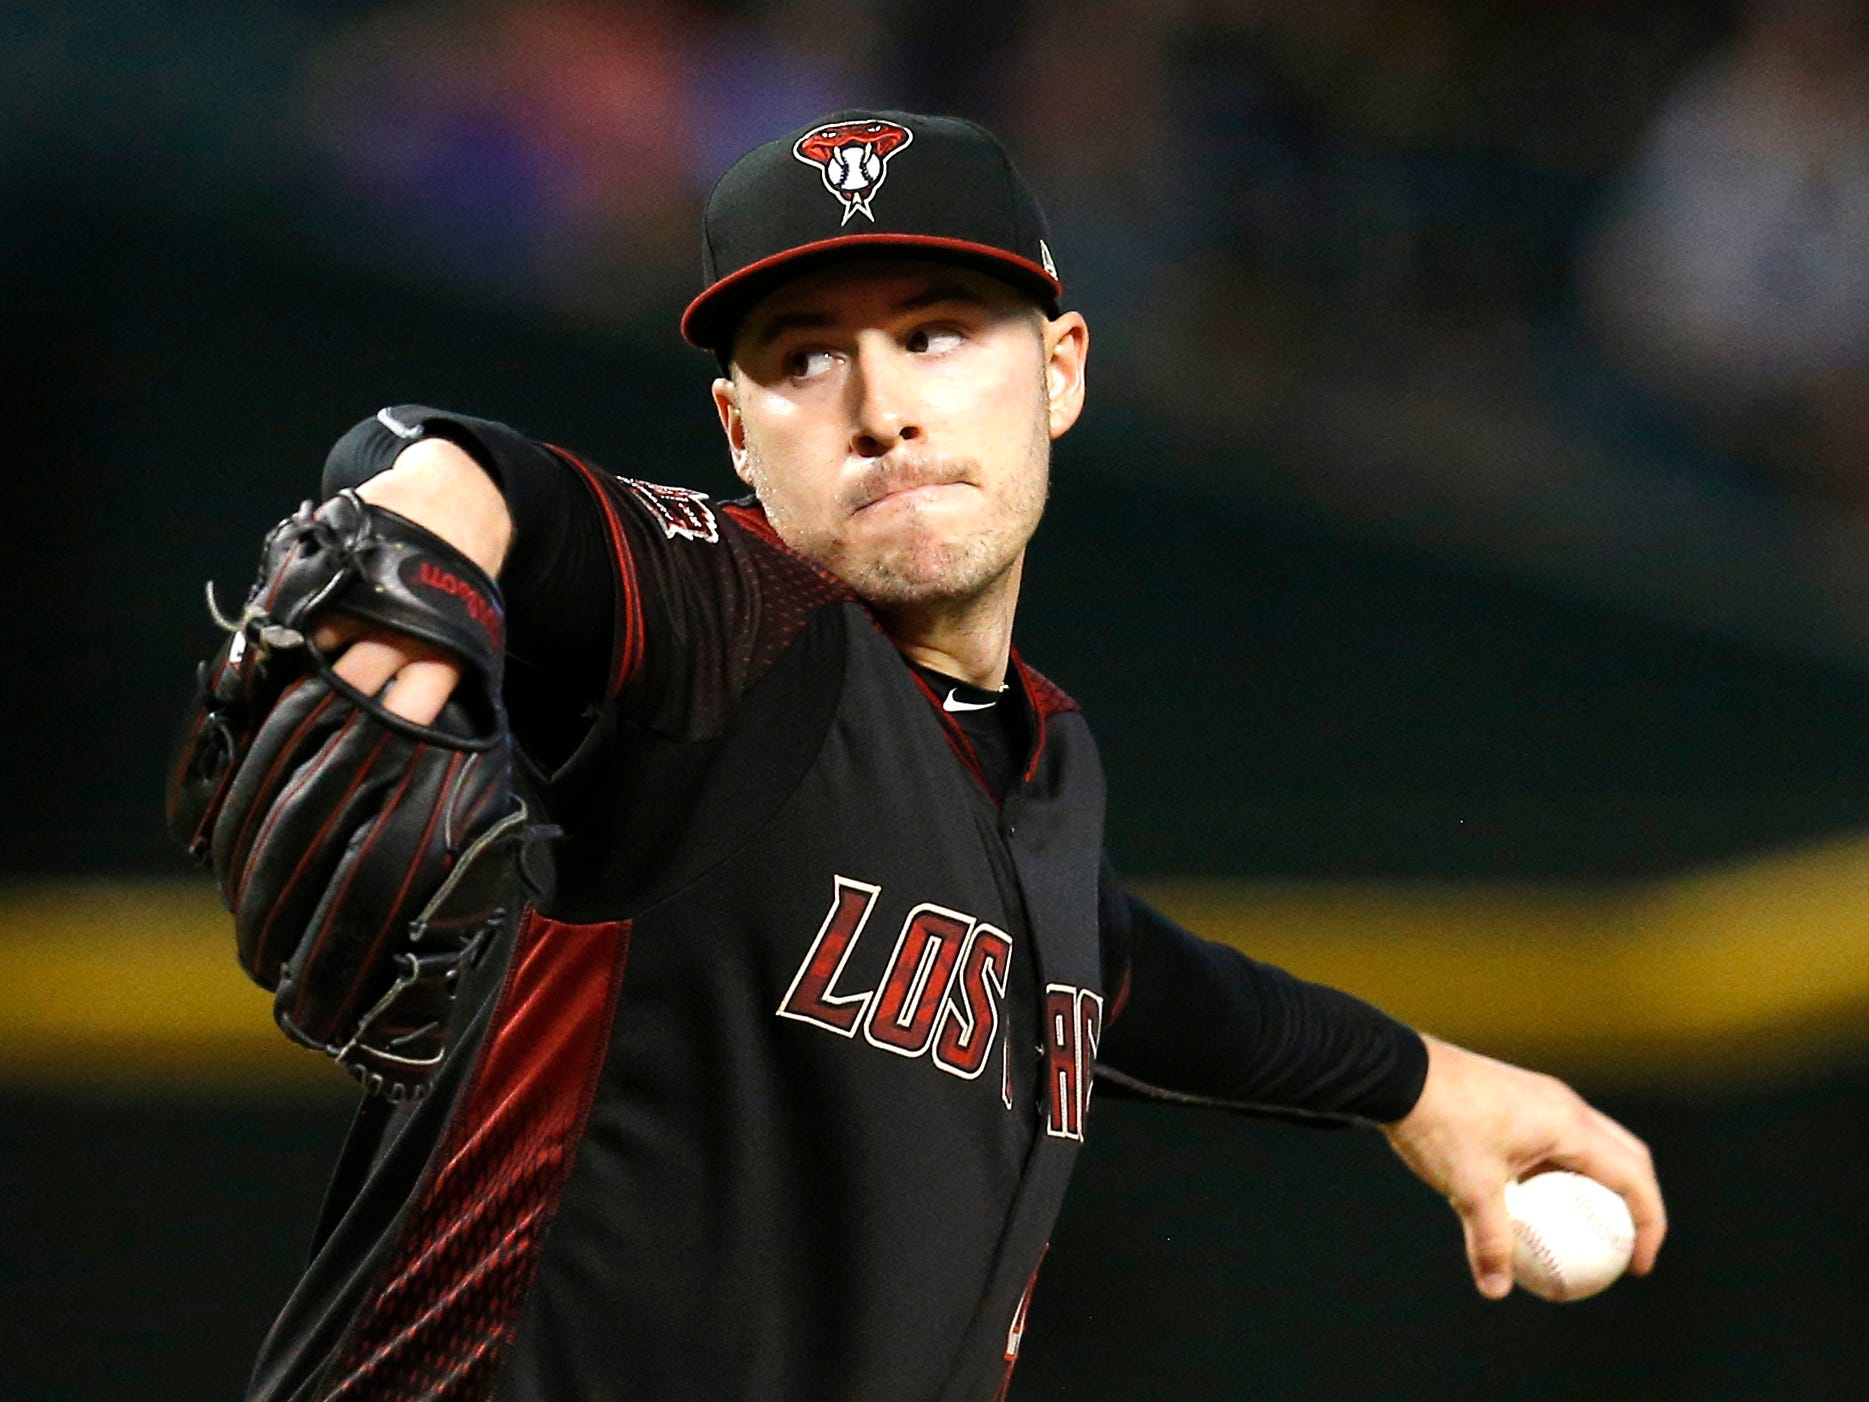 4. Patrick Corbin, SP, 29: The left-hander's sixth year in the majors was, easily, his best, another case of great timing. He had career-bests in hits per nine innings (7.3) and K's (246), earning a $17.9 million qualifying offer. But he's almost certainly moving on. Prediction: Yankees, five years, $81 million. UPDATE: Nationals, six years, $140 million.